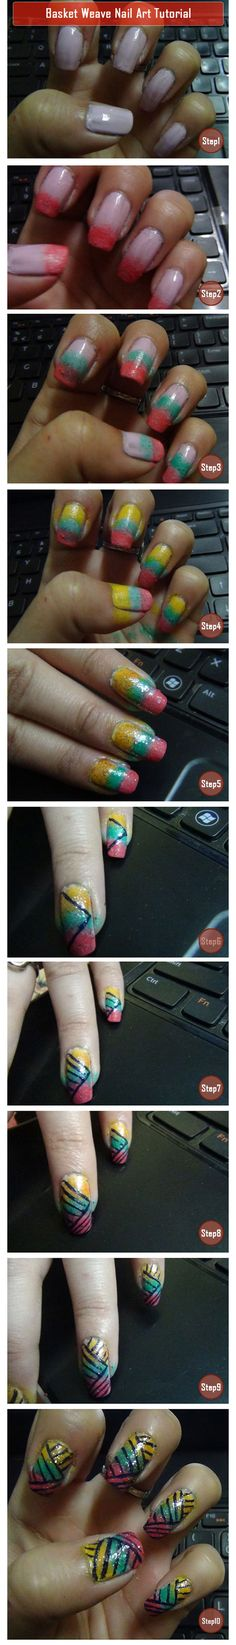 Basket Weave Nail Art Tutorial